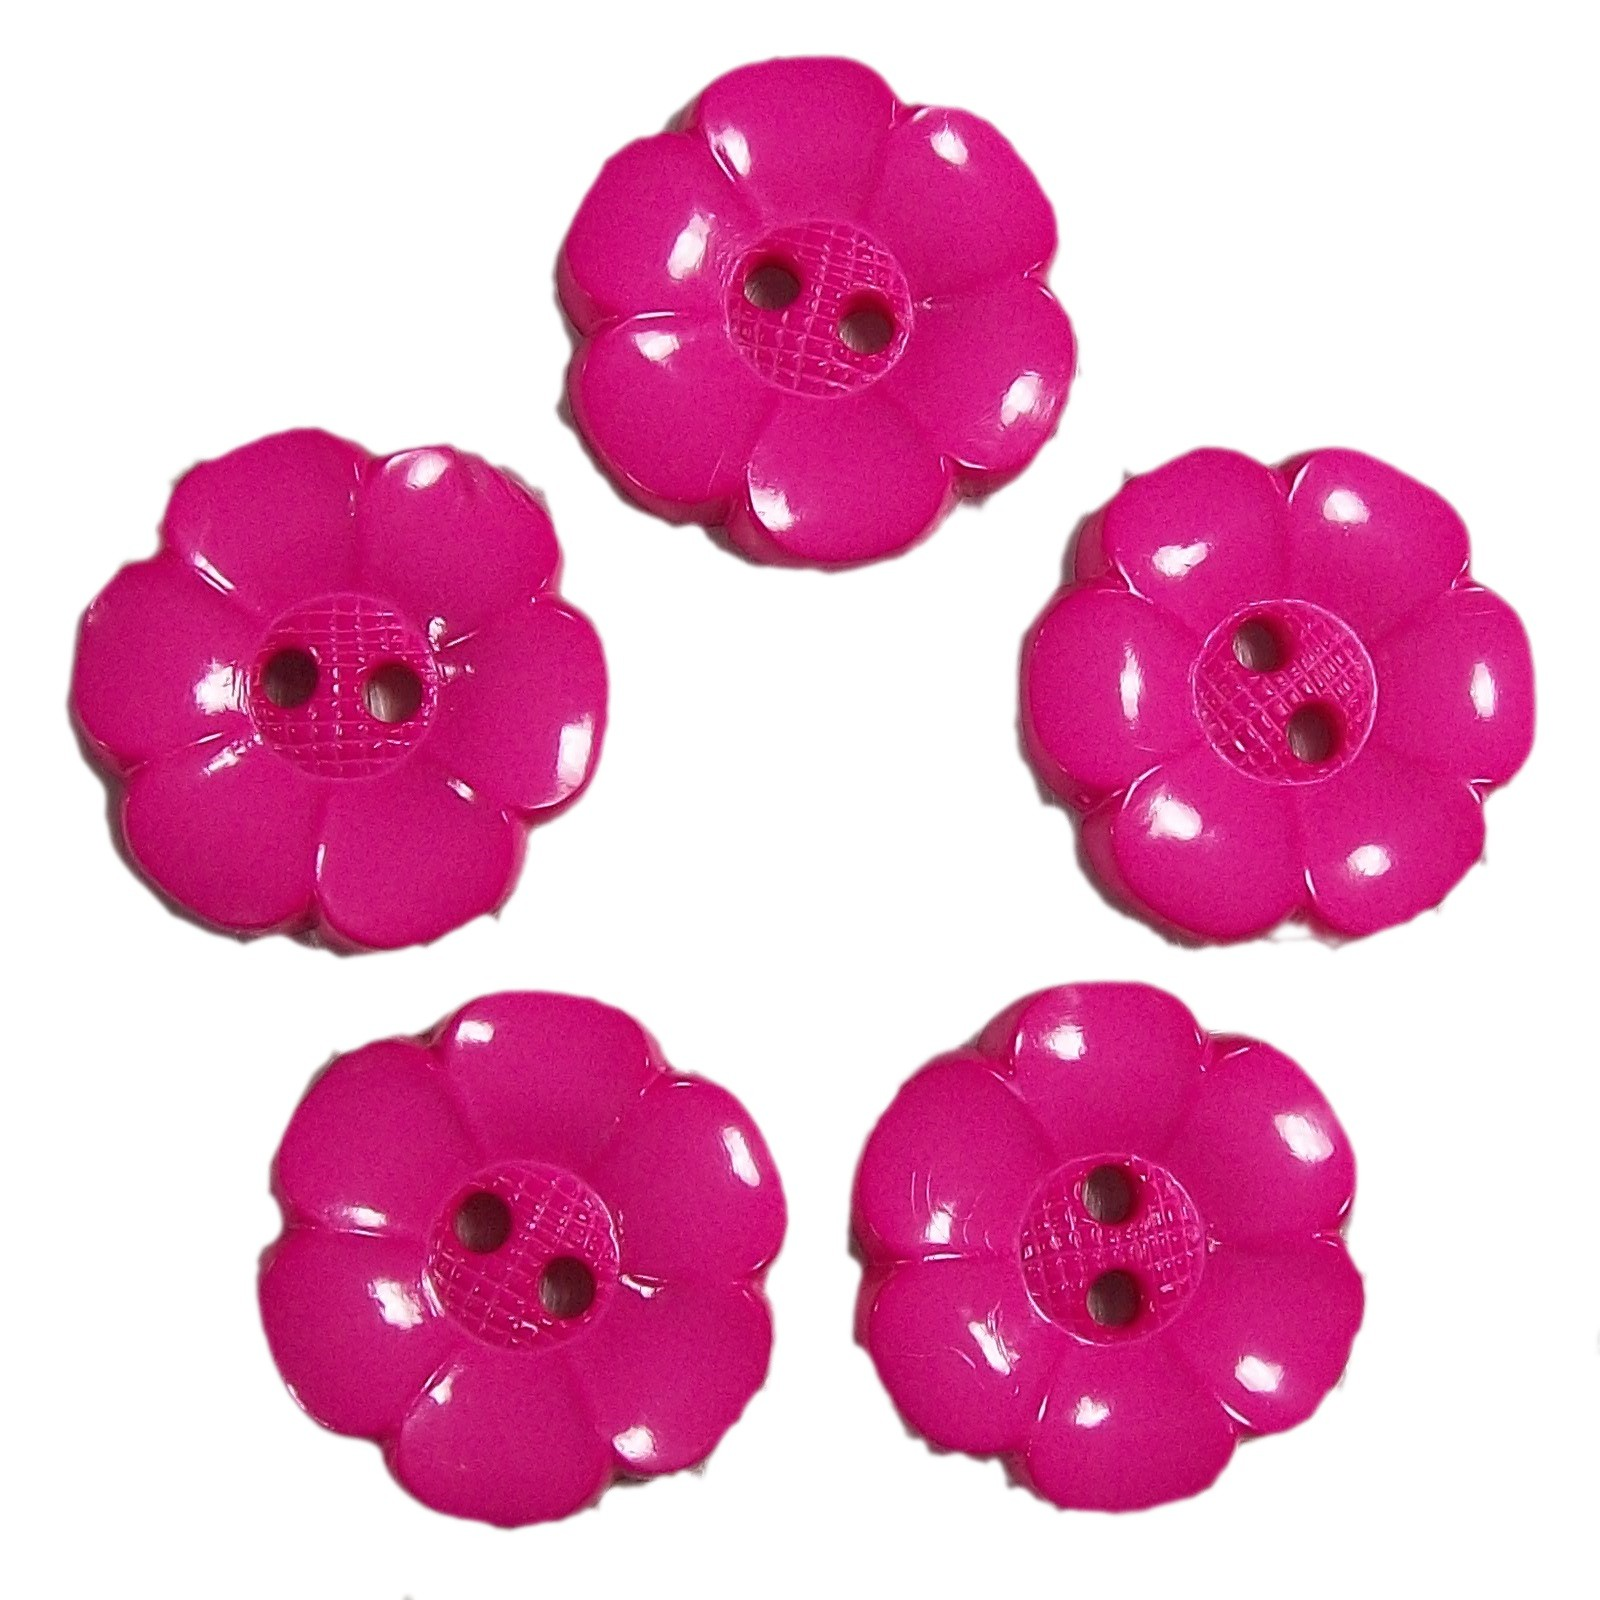 Large Daisy Flower Feature Button 22mm Pink Pack of 5